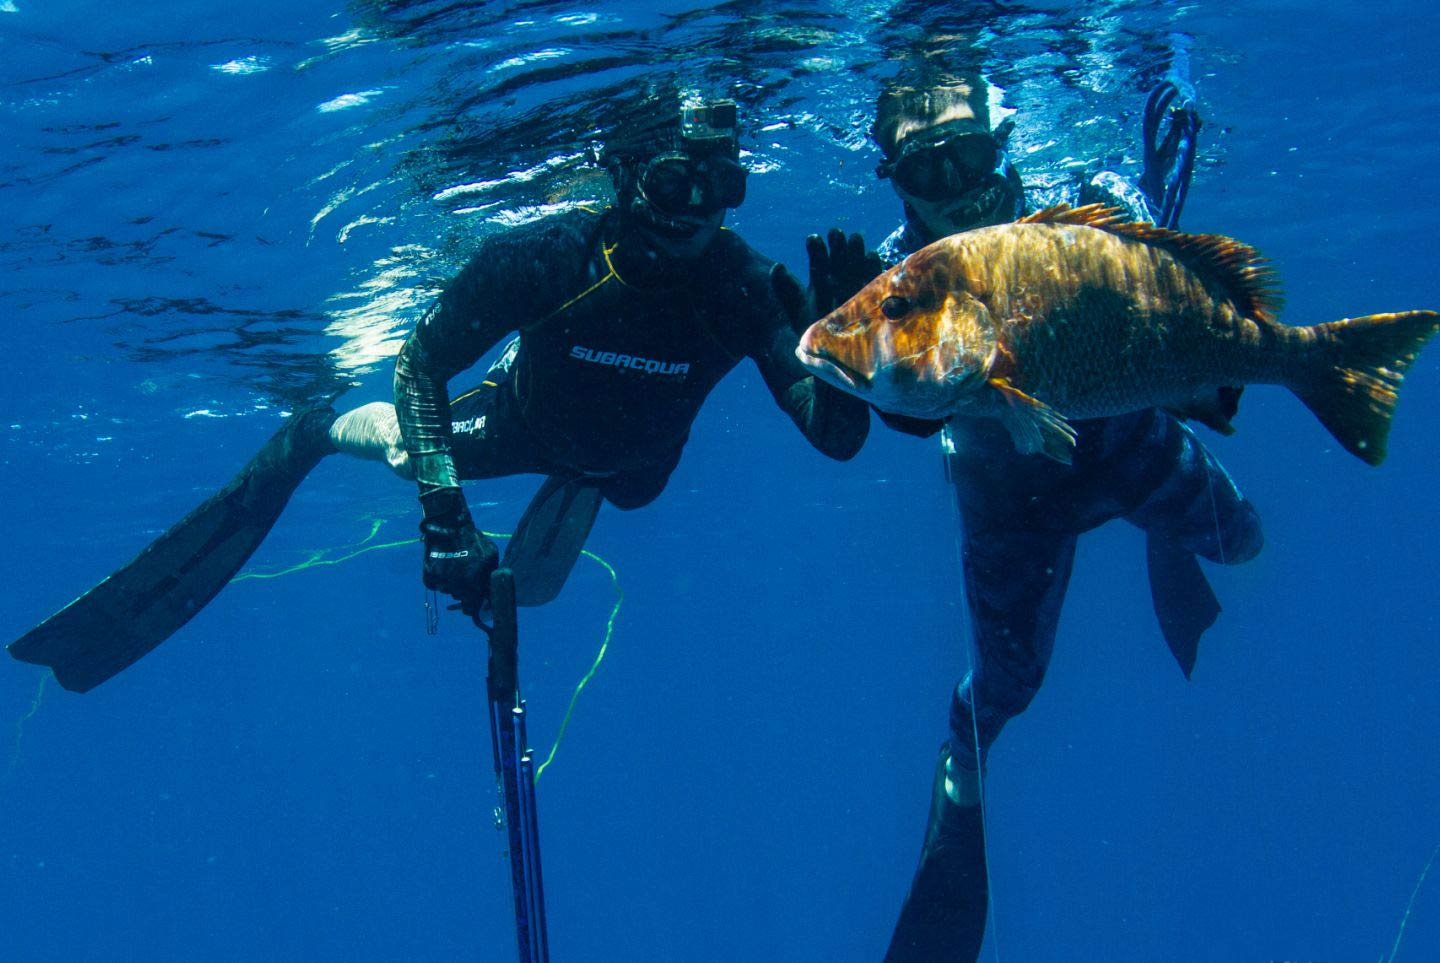 Two men wearing diving gear and holding a spear gun underwater with a Snapper in the foreground